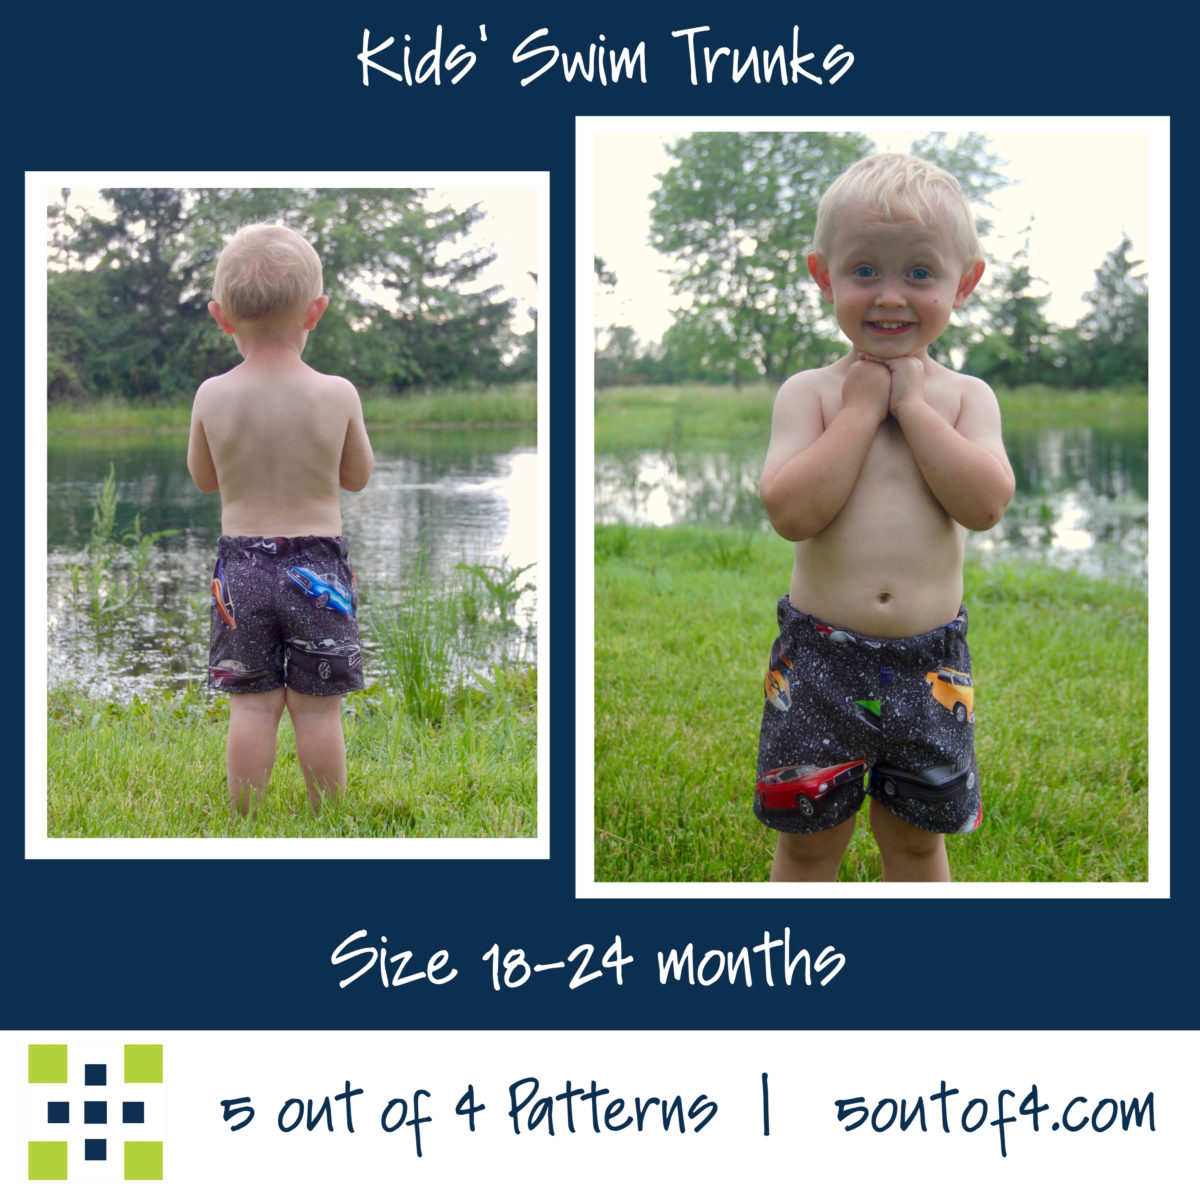 5oo4 kids' swim trunks size 18-24 months